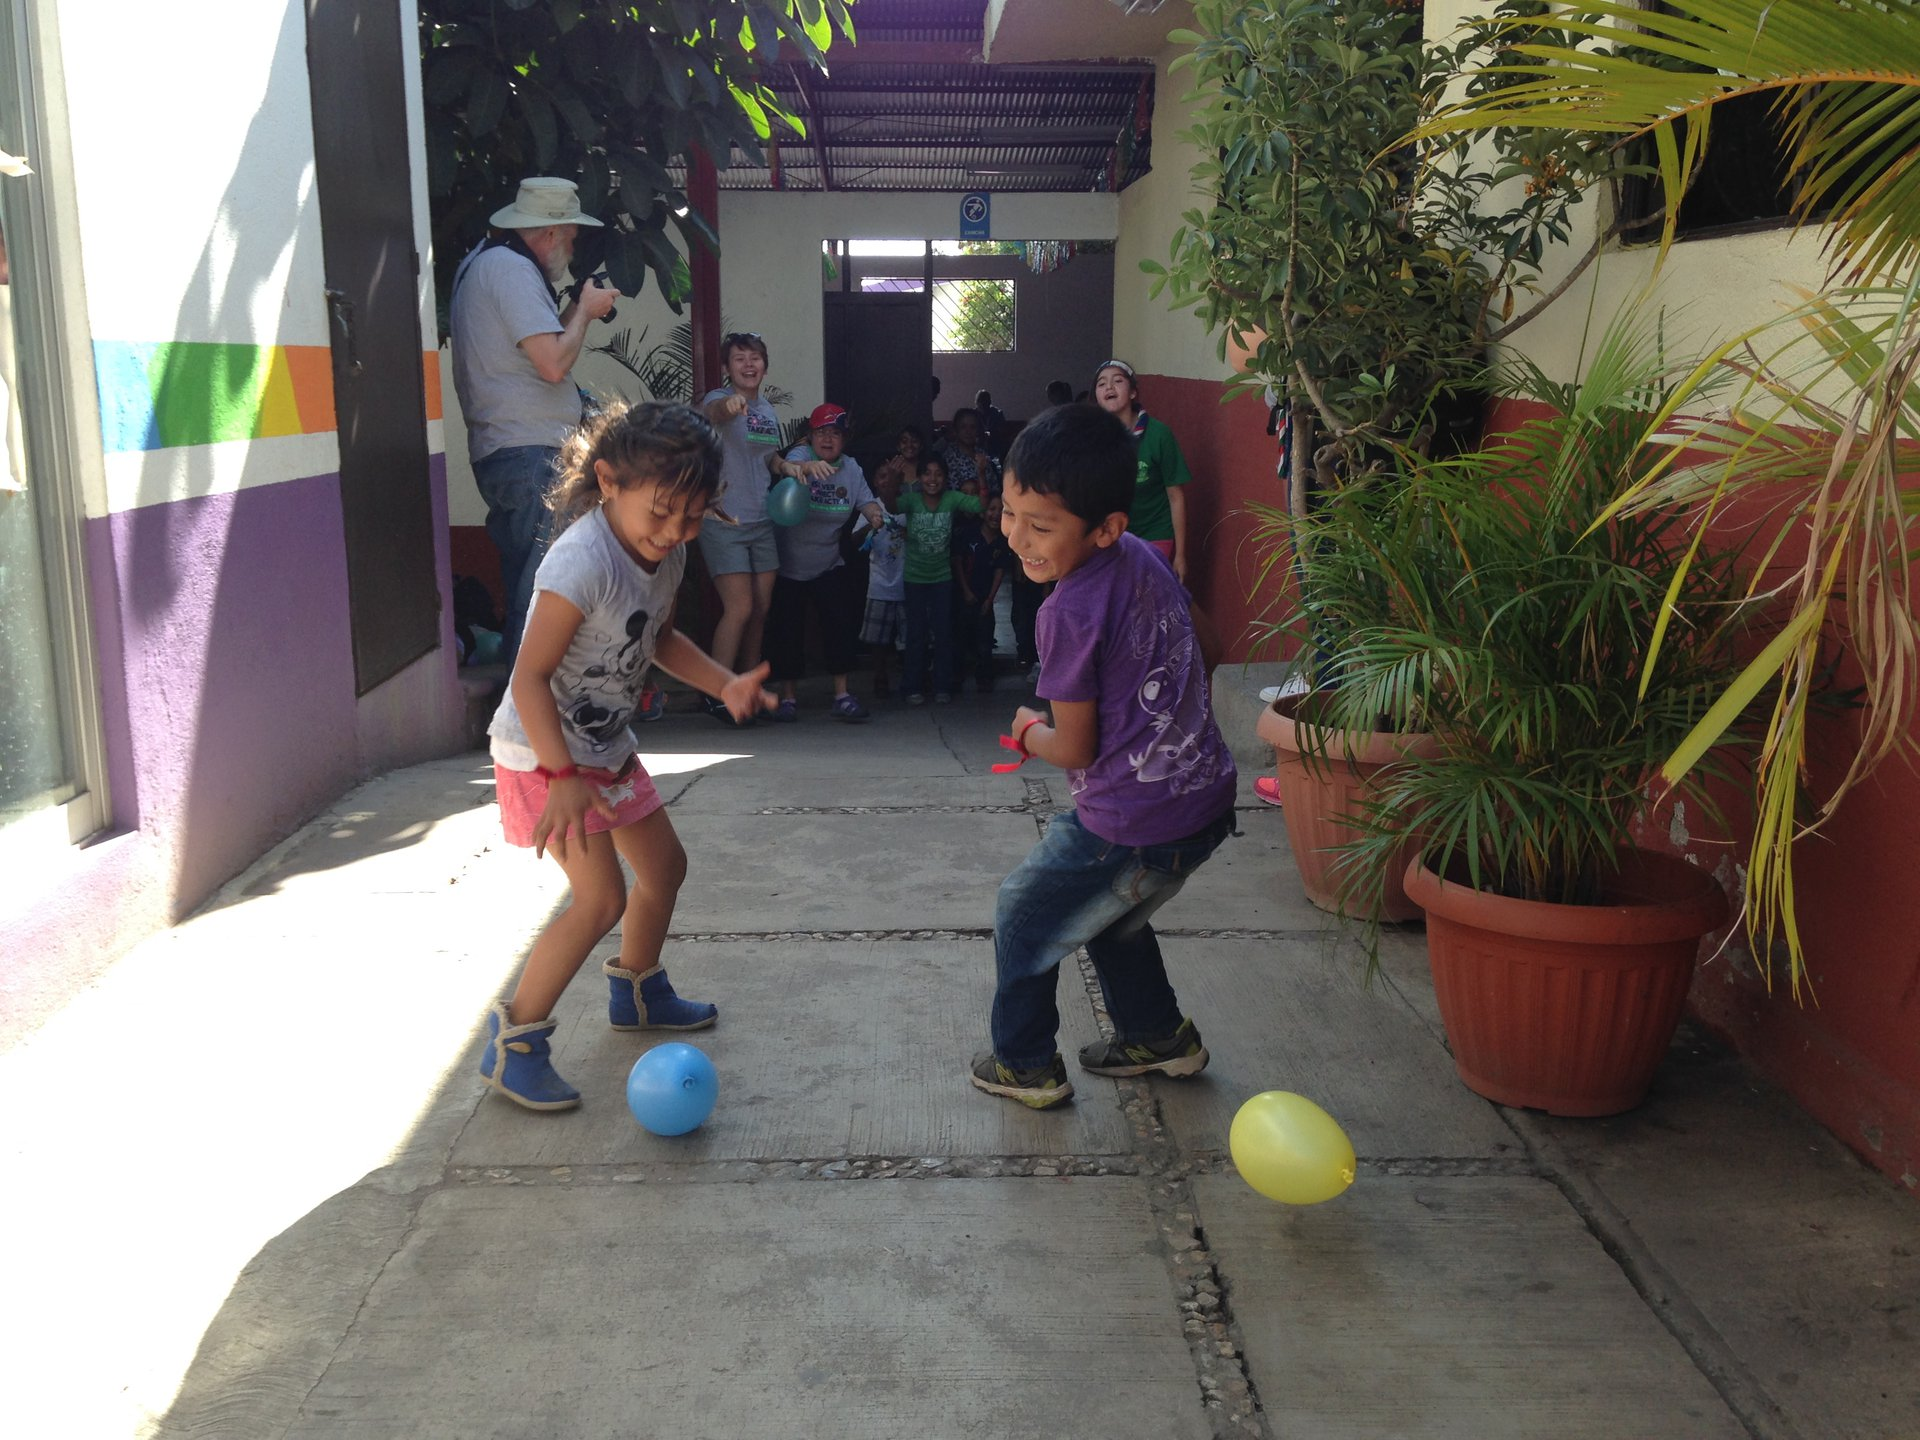 012015 Our Cabana children playing with balloons